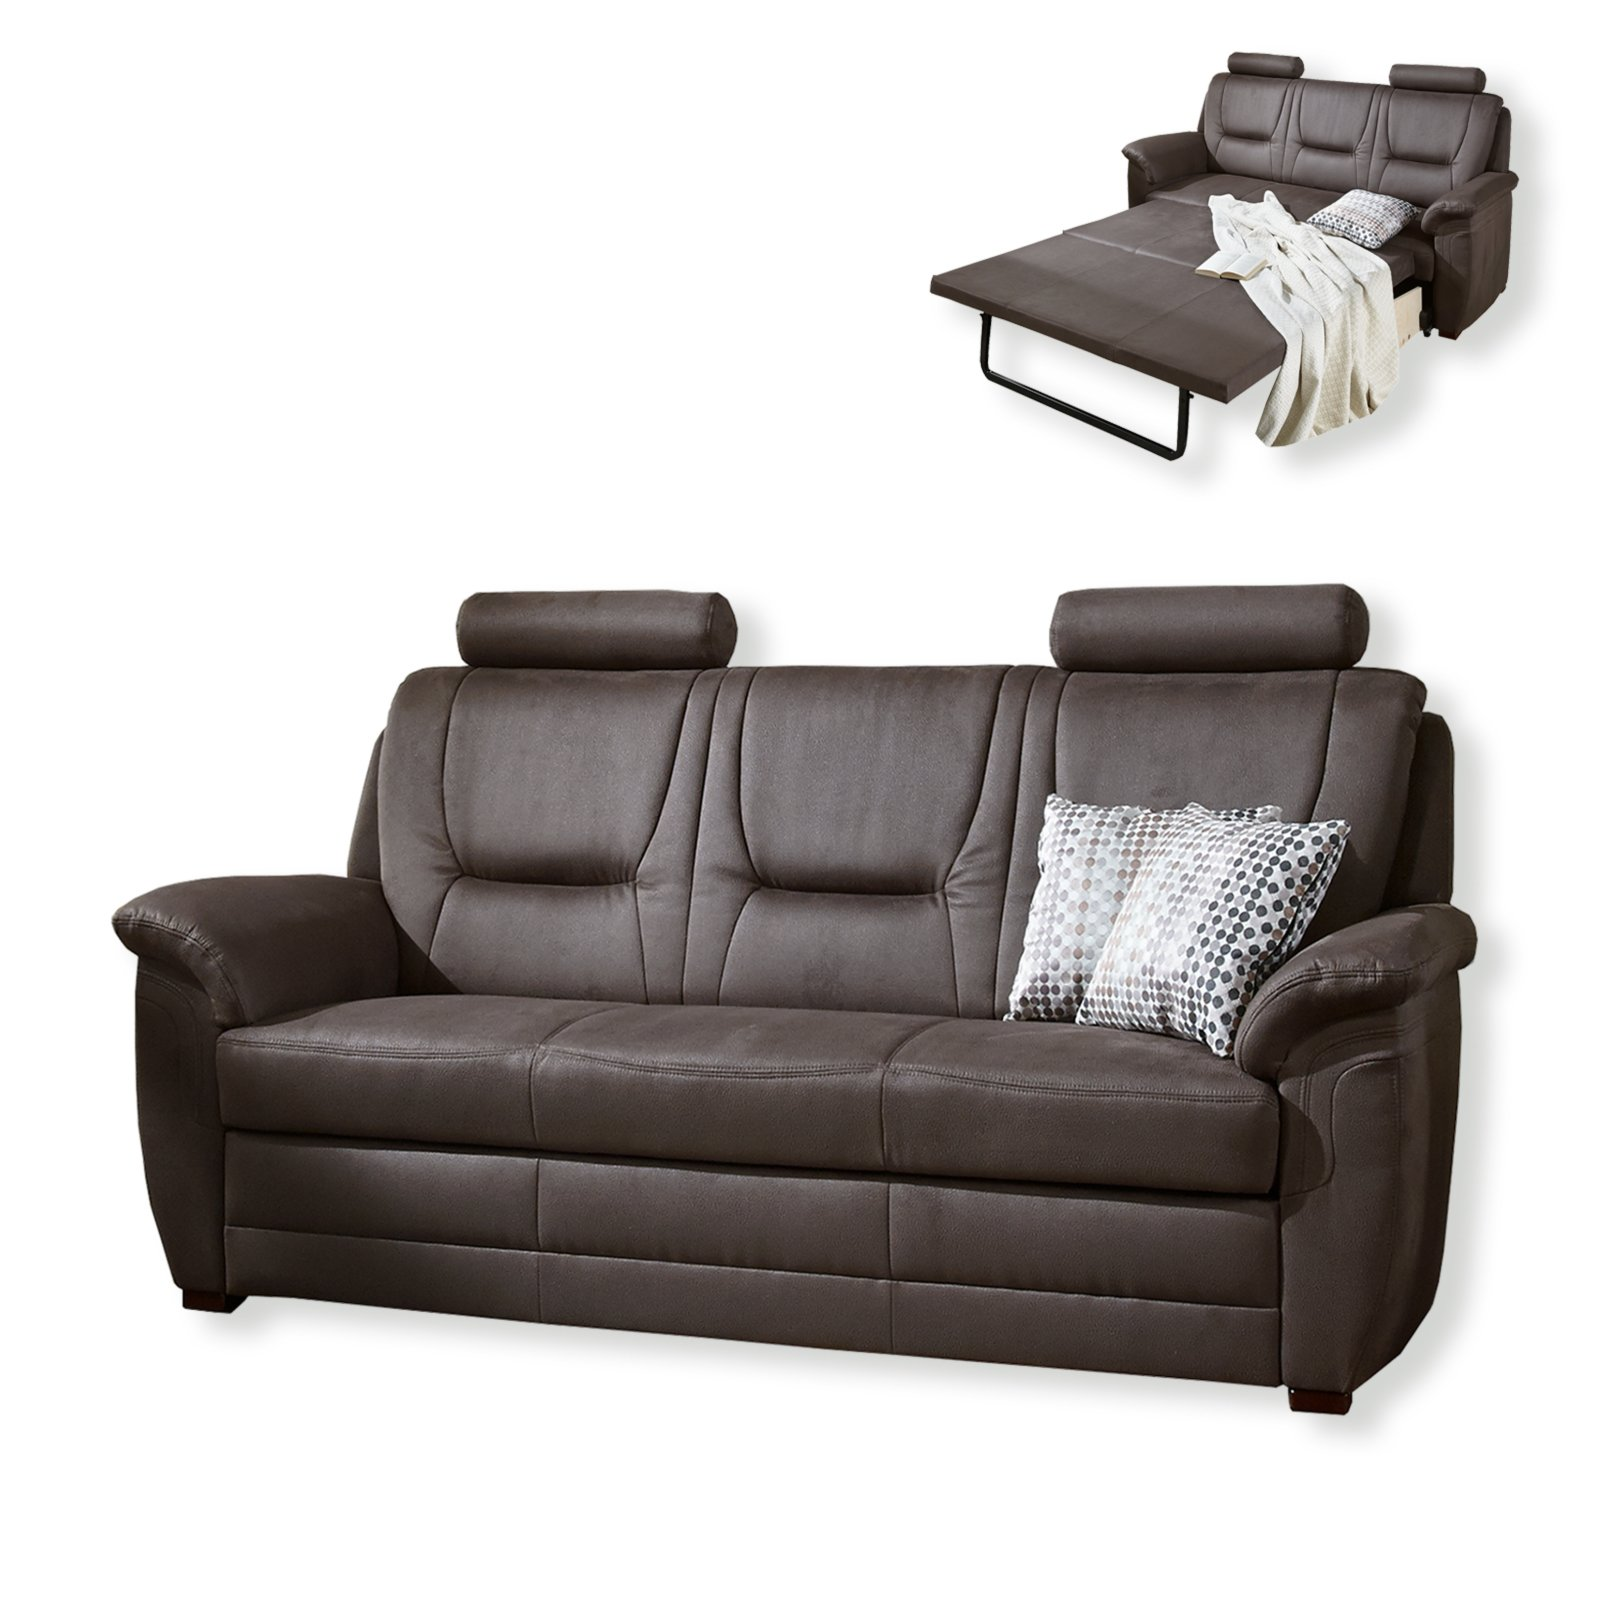 3 sitzer sofa nougat liegefunktion bonellfederkern einzelsofas 2er 3er 4er sofas. Black Bedroom Furniture Sets. Home Design Ideas